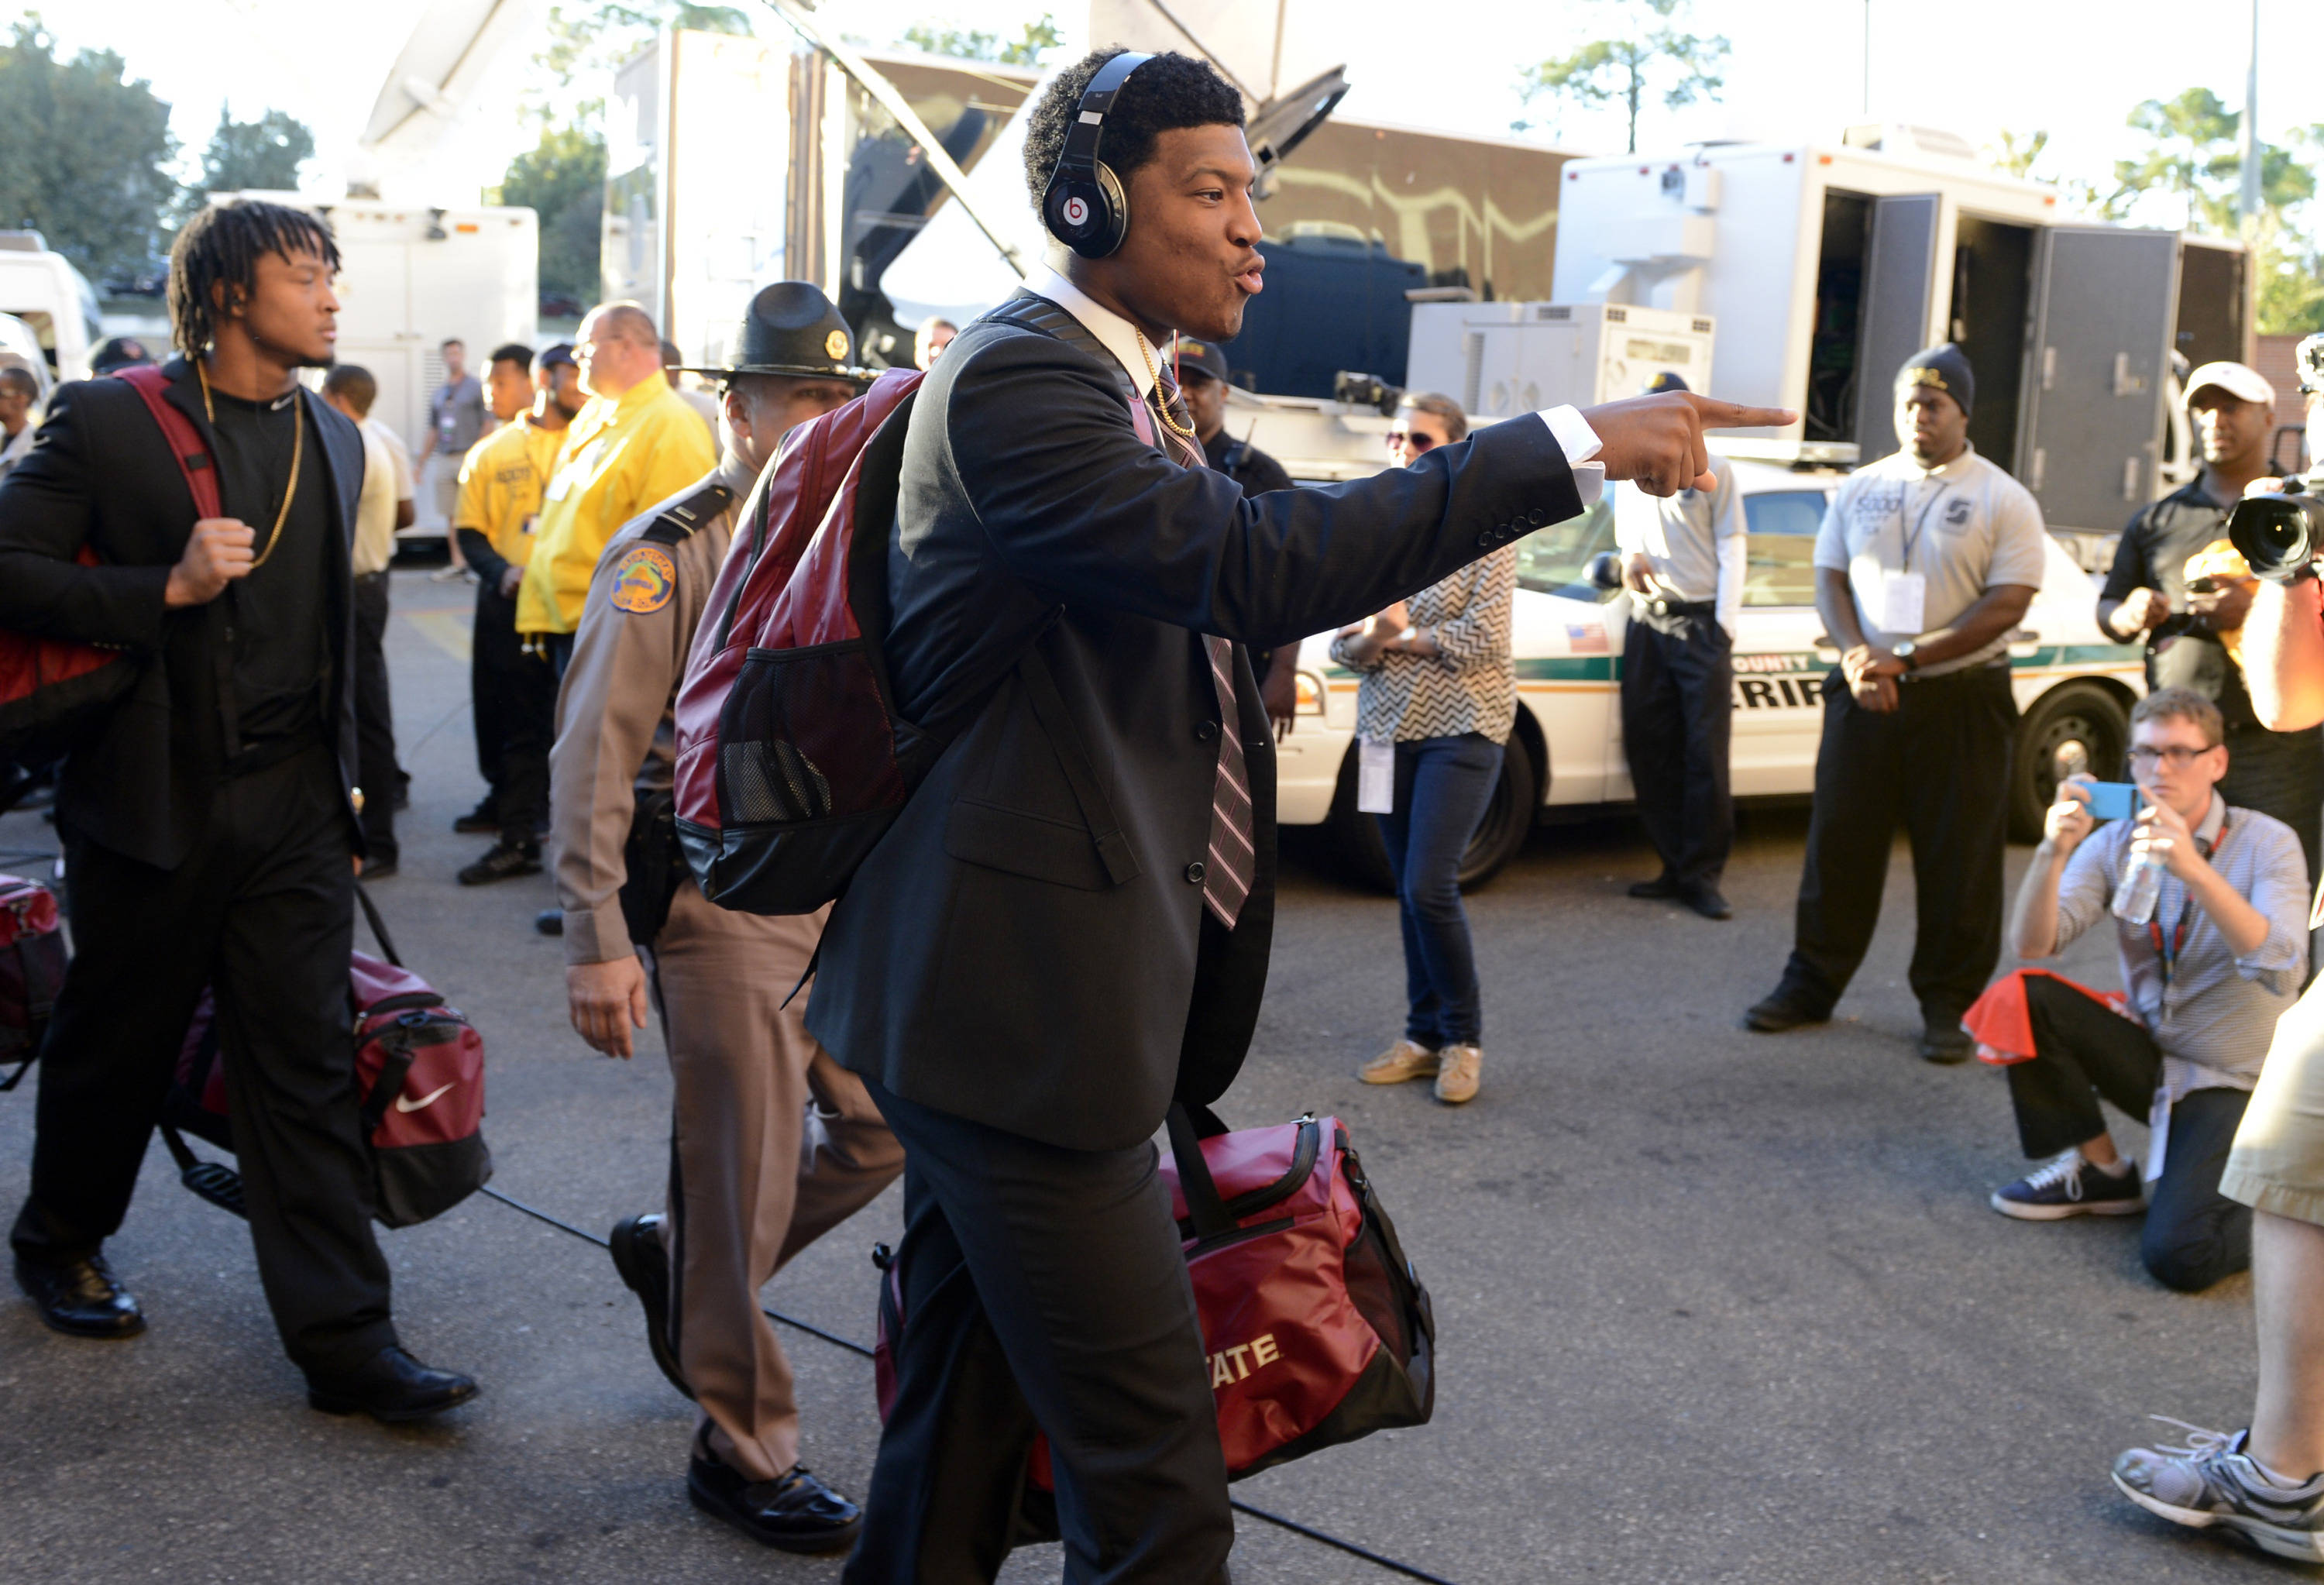 Florida State Seminoles quarterback Jameis Winston (5) arrives at Doak Campbell Stadium for their game against the Miami Hurricanes. Mandatory Credit: John David Mercer-USA TODAY Sports